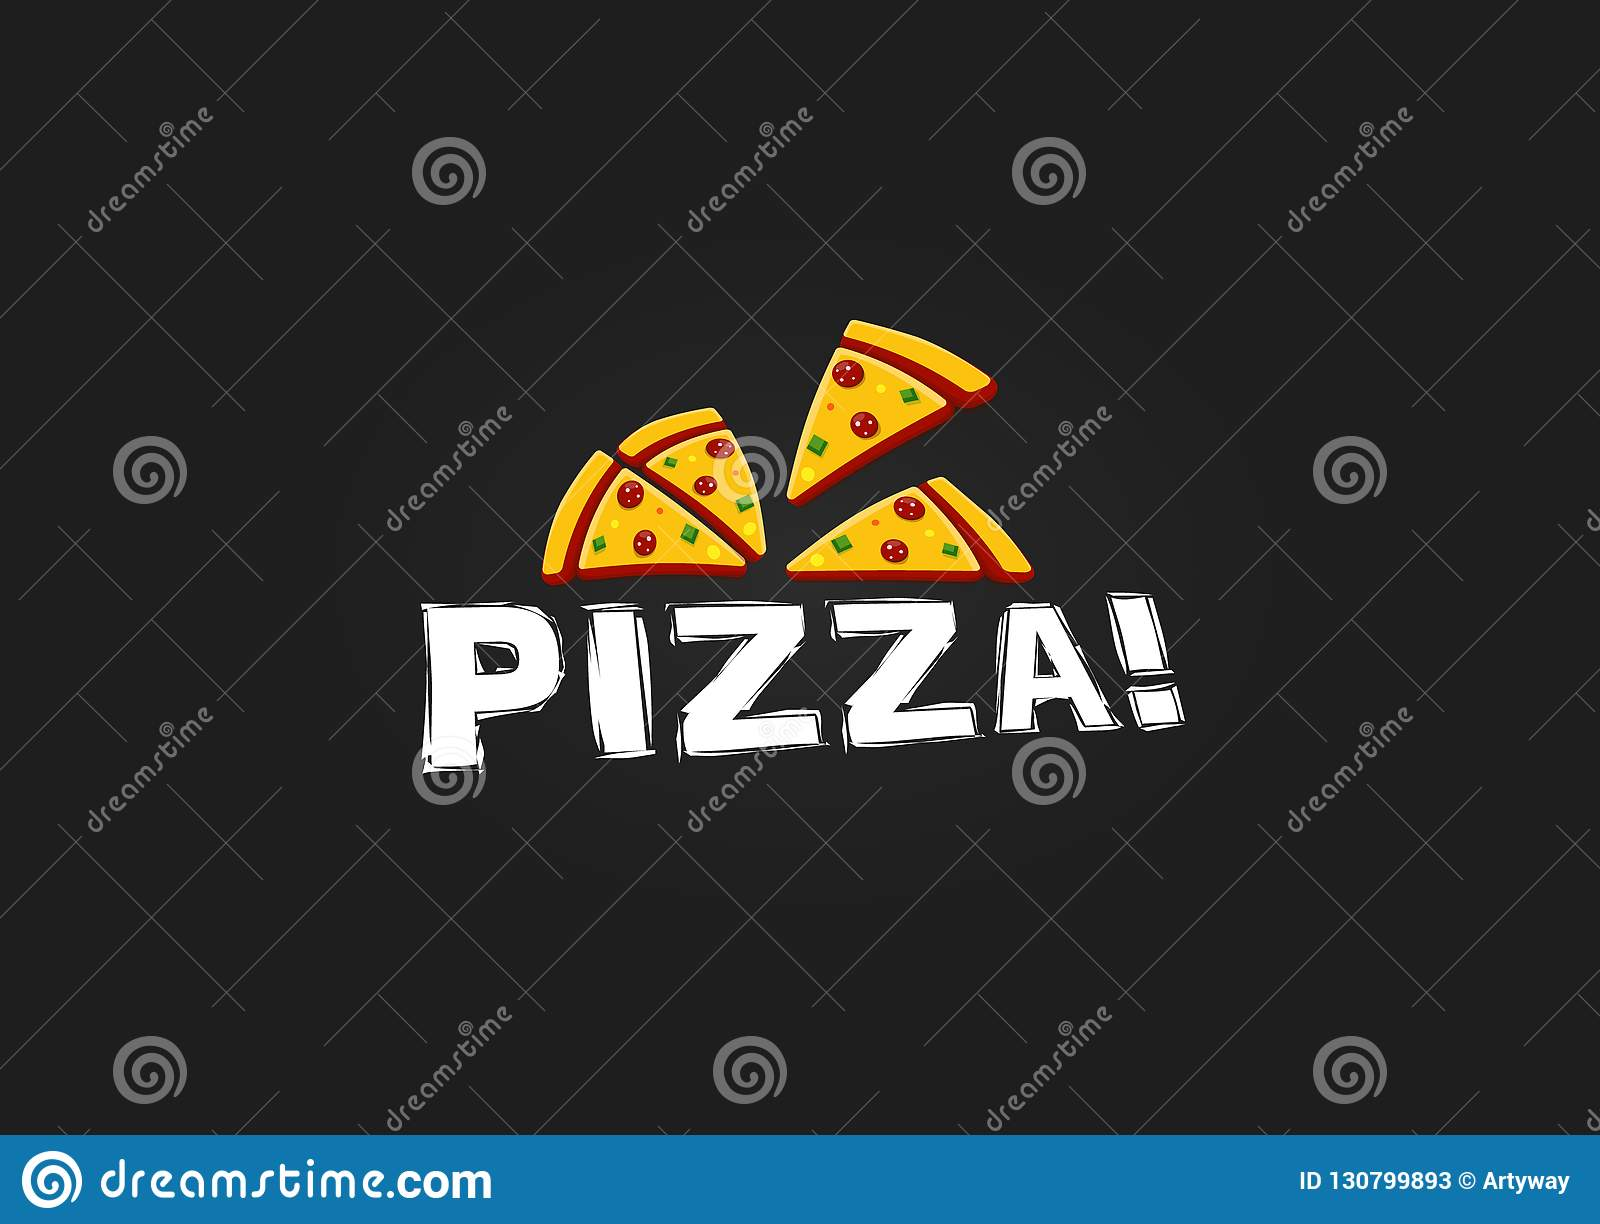 Icon of Pizza slice. Modern Pizzeria logo template. Italian Food Restaurant Emblem. Fast food cafe logotype design